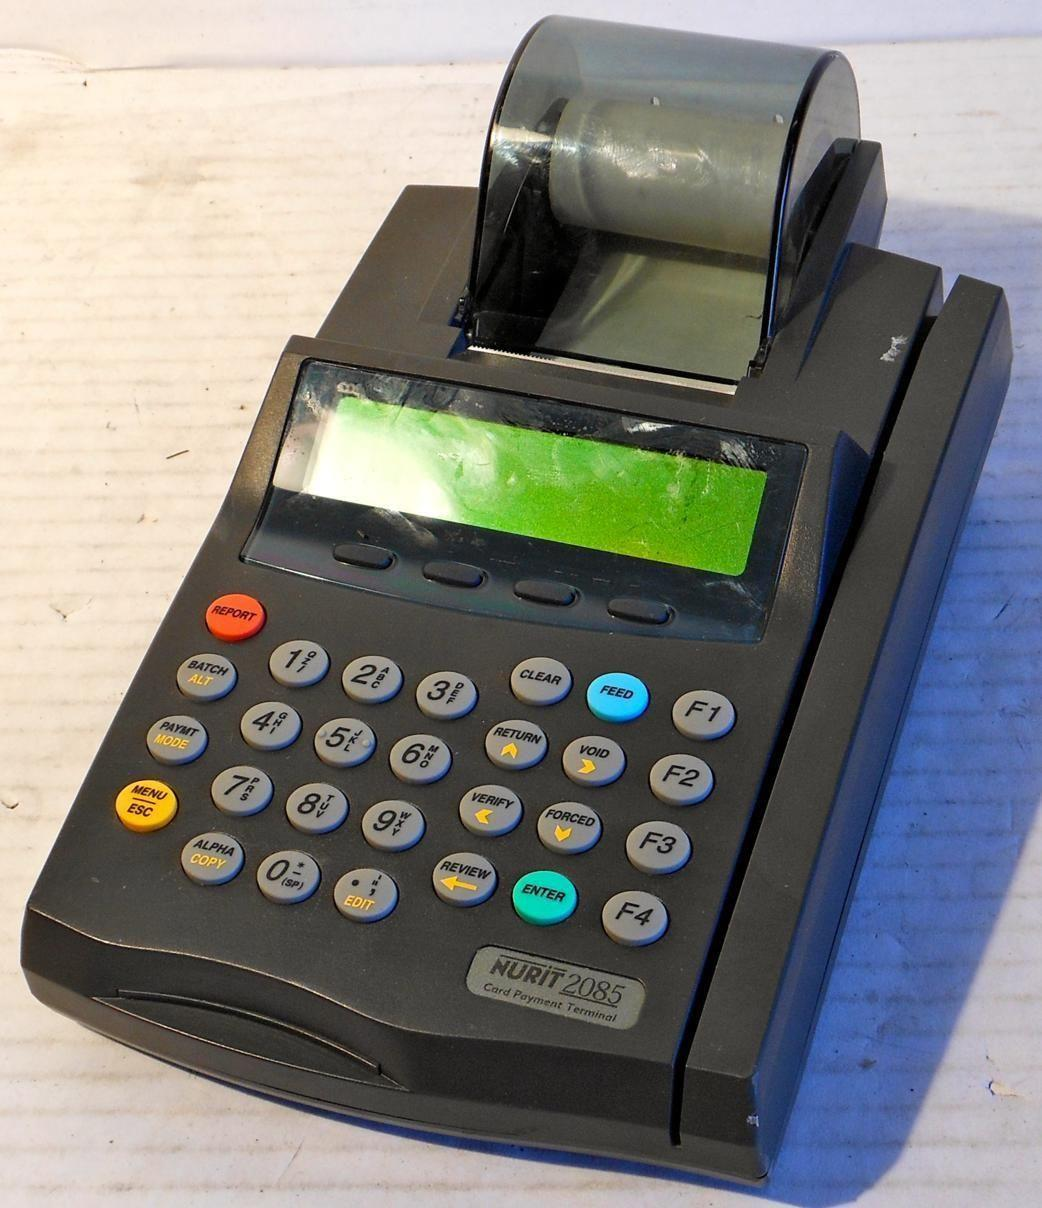 nurit 2085 credit card terminal paper · nurit 2085 no paper mode it keeps saying no paper mode and wont print batch - verifone nurit 2085 credit card question.